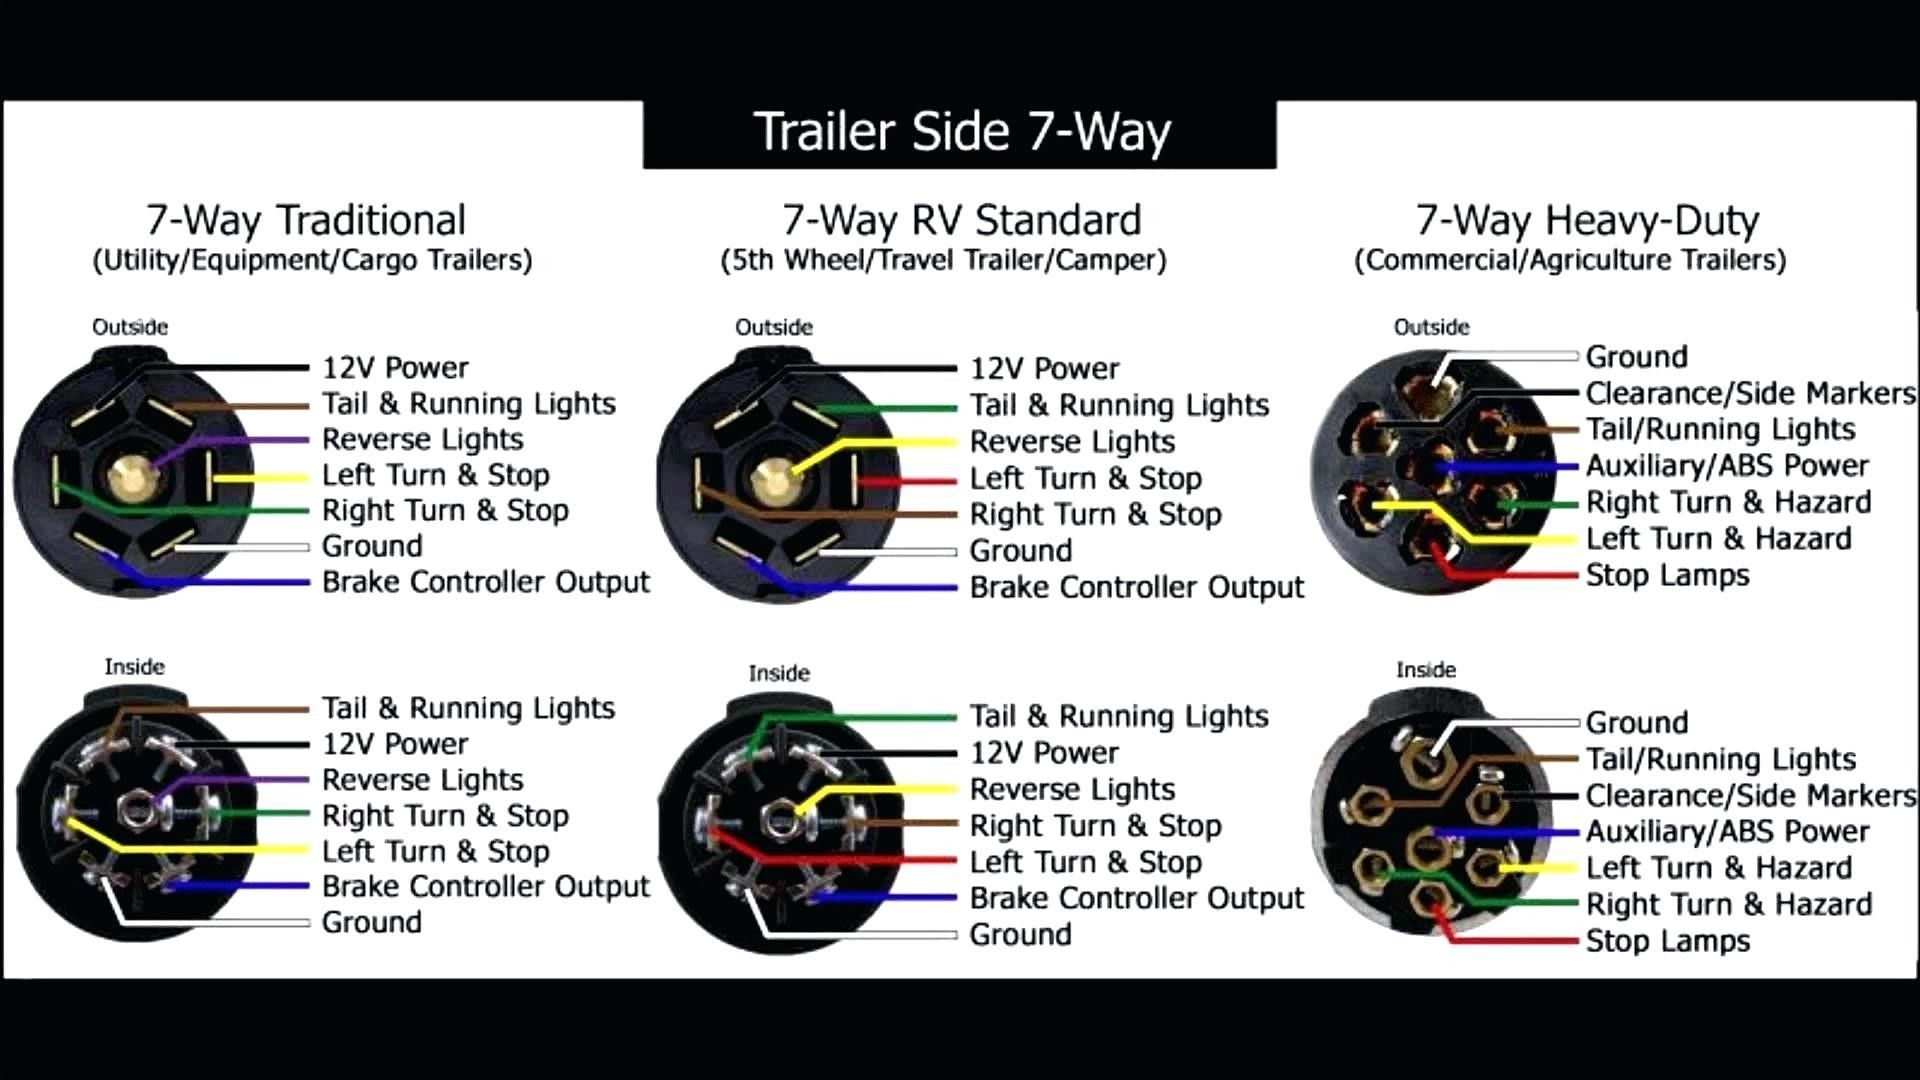 Dodge Ram 7 Pin Trailer Wiring Diagram Beautiful Dorable Hopkins Rv Plug  Motif Ideas Of On Seven Pin… | Trailer wiring diagram, Trailer light wiring,  Cargo trailersPinterest